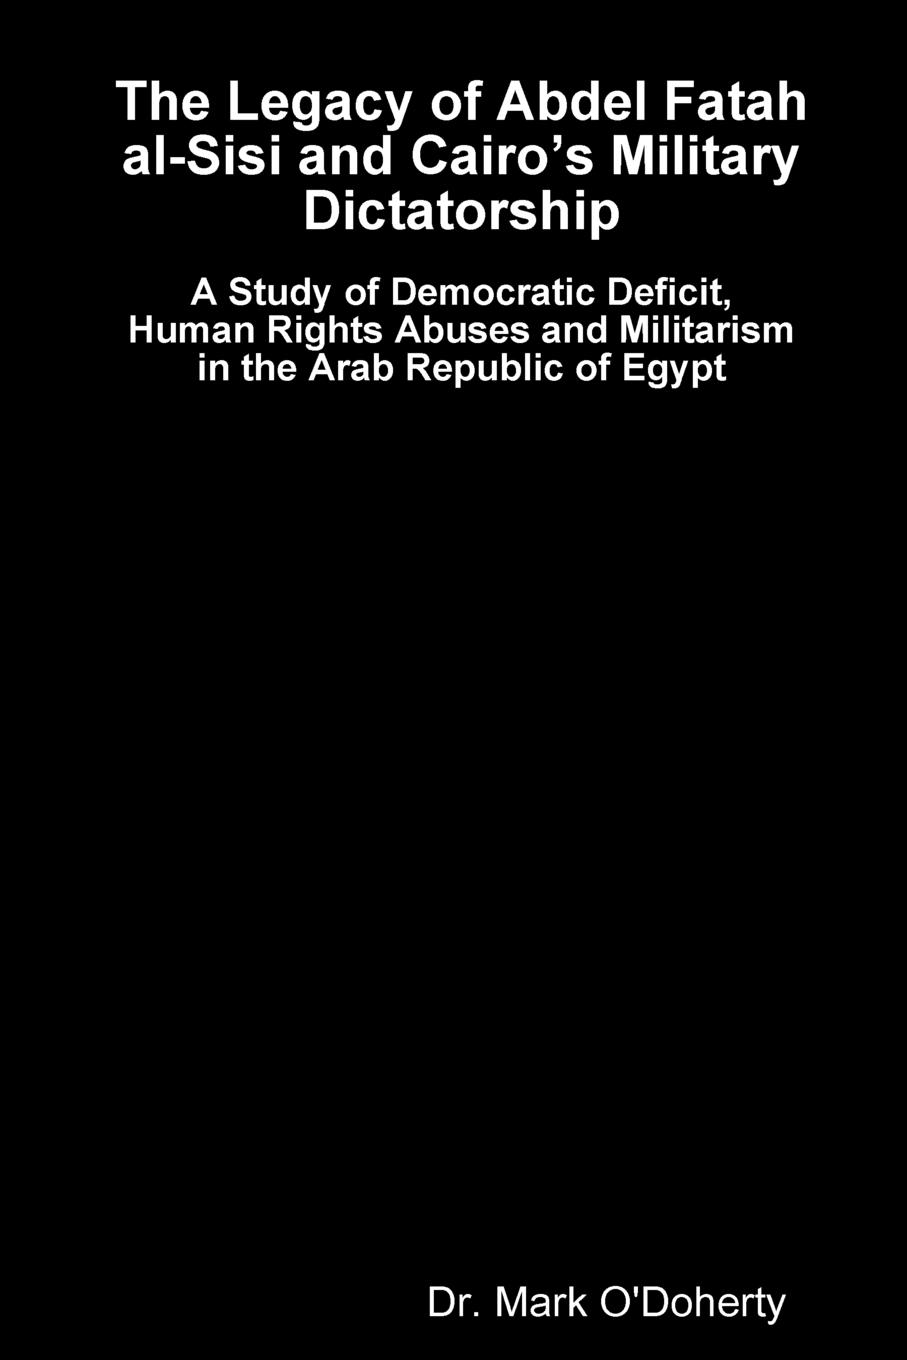 Dr. Mark O'Doherty The Legacy of Abdel Fatah al-Sisi and Cairo.s Military Dictatorship - A Study of Democratic Deficit, Human Rights Abuses and Militarism in the Arab Republic of Egypt все цены